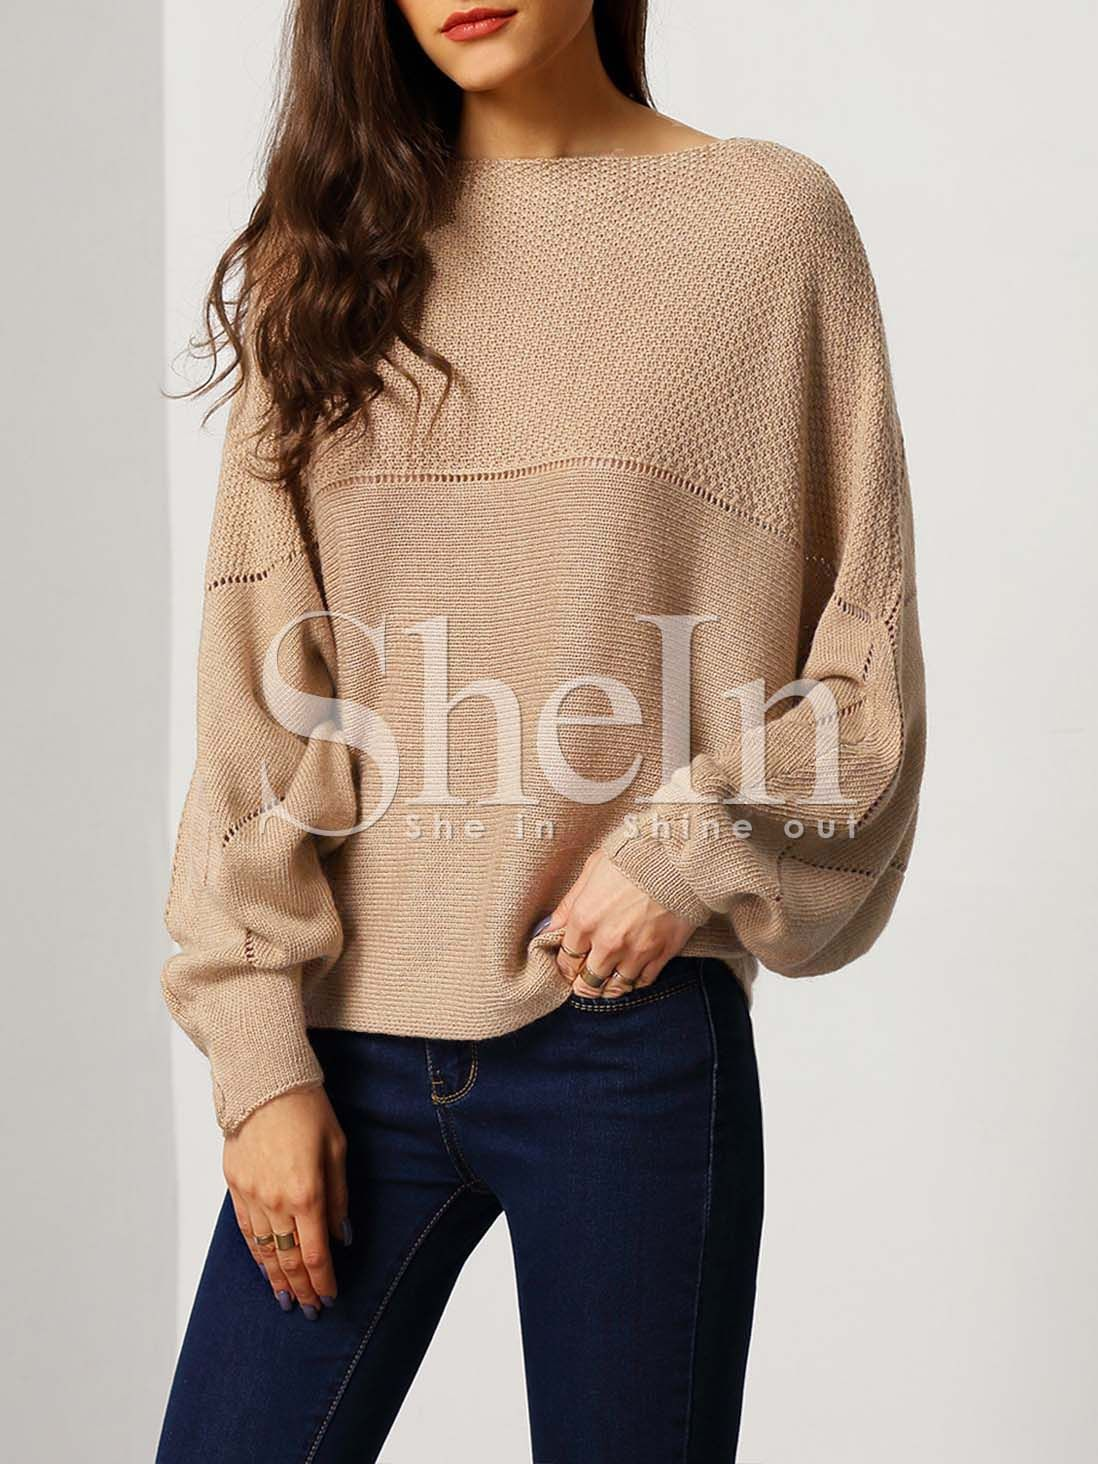 Brown Boat Neck Batwing Sleeve Eyelet Sweater | Pullover, Boat ...